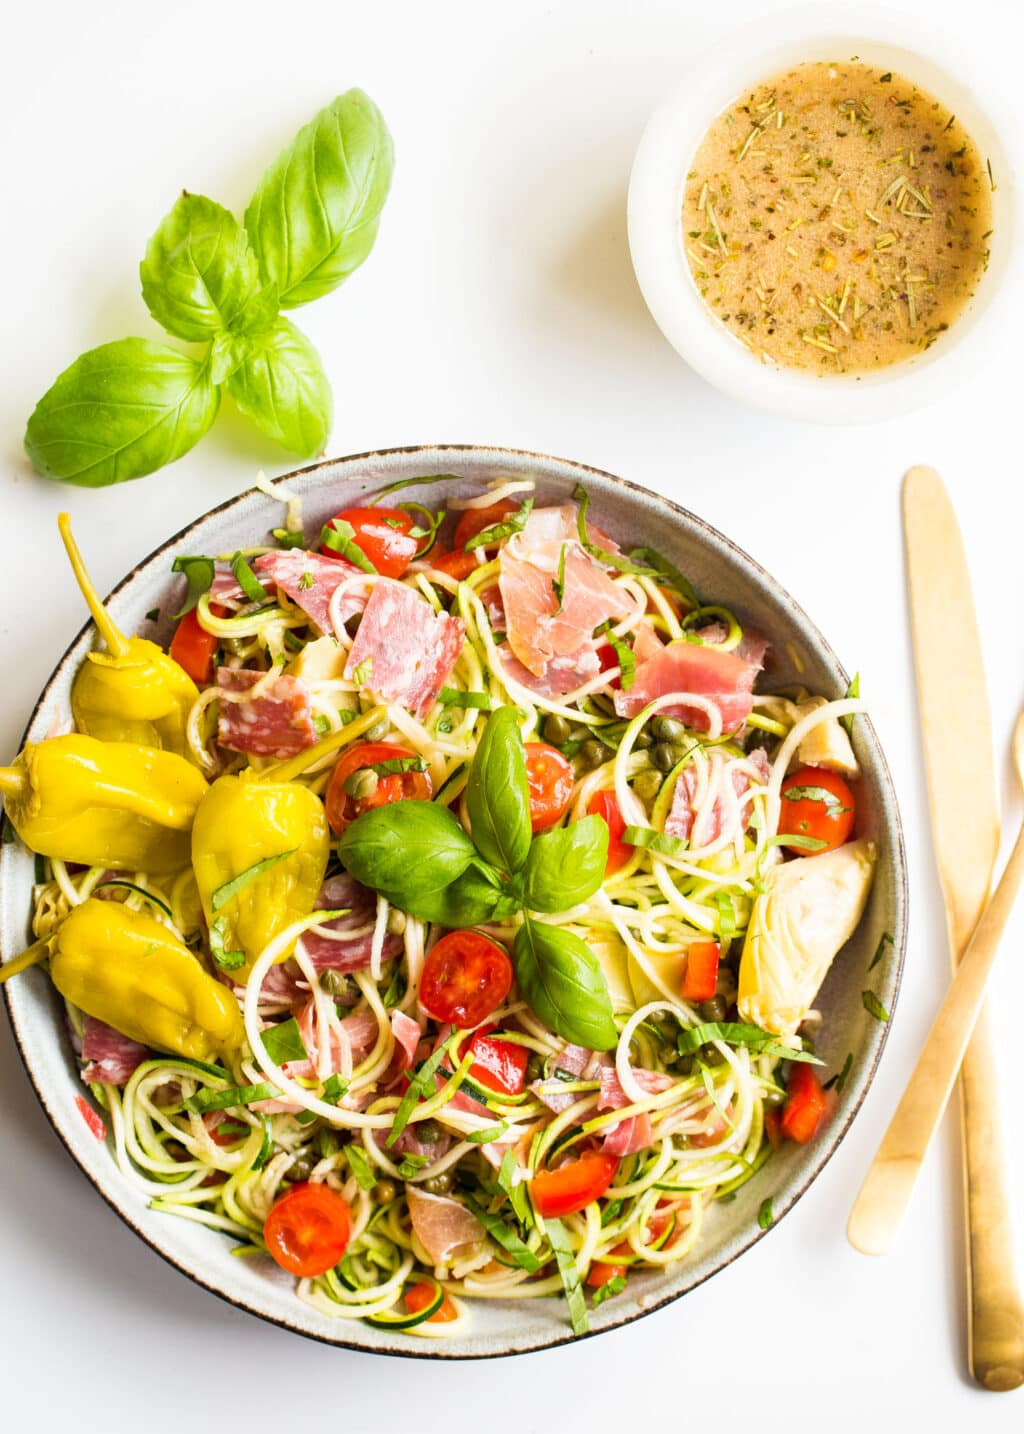 Bowl of zucchini noodles and veggies with salami and fresh basil on a white background.